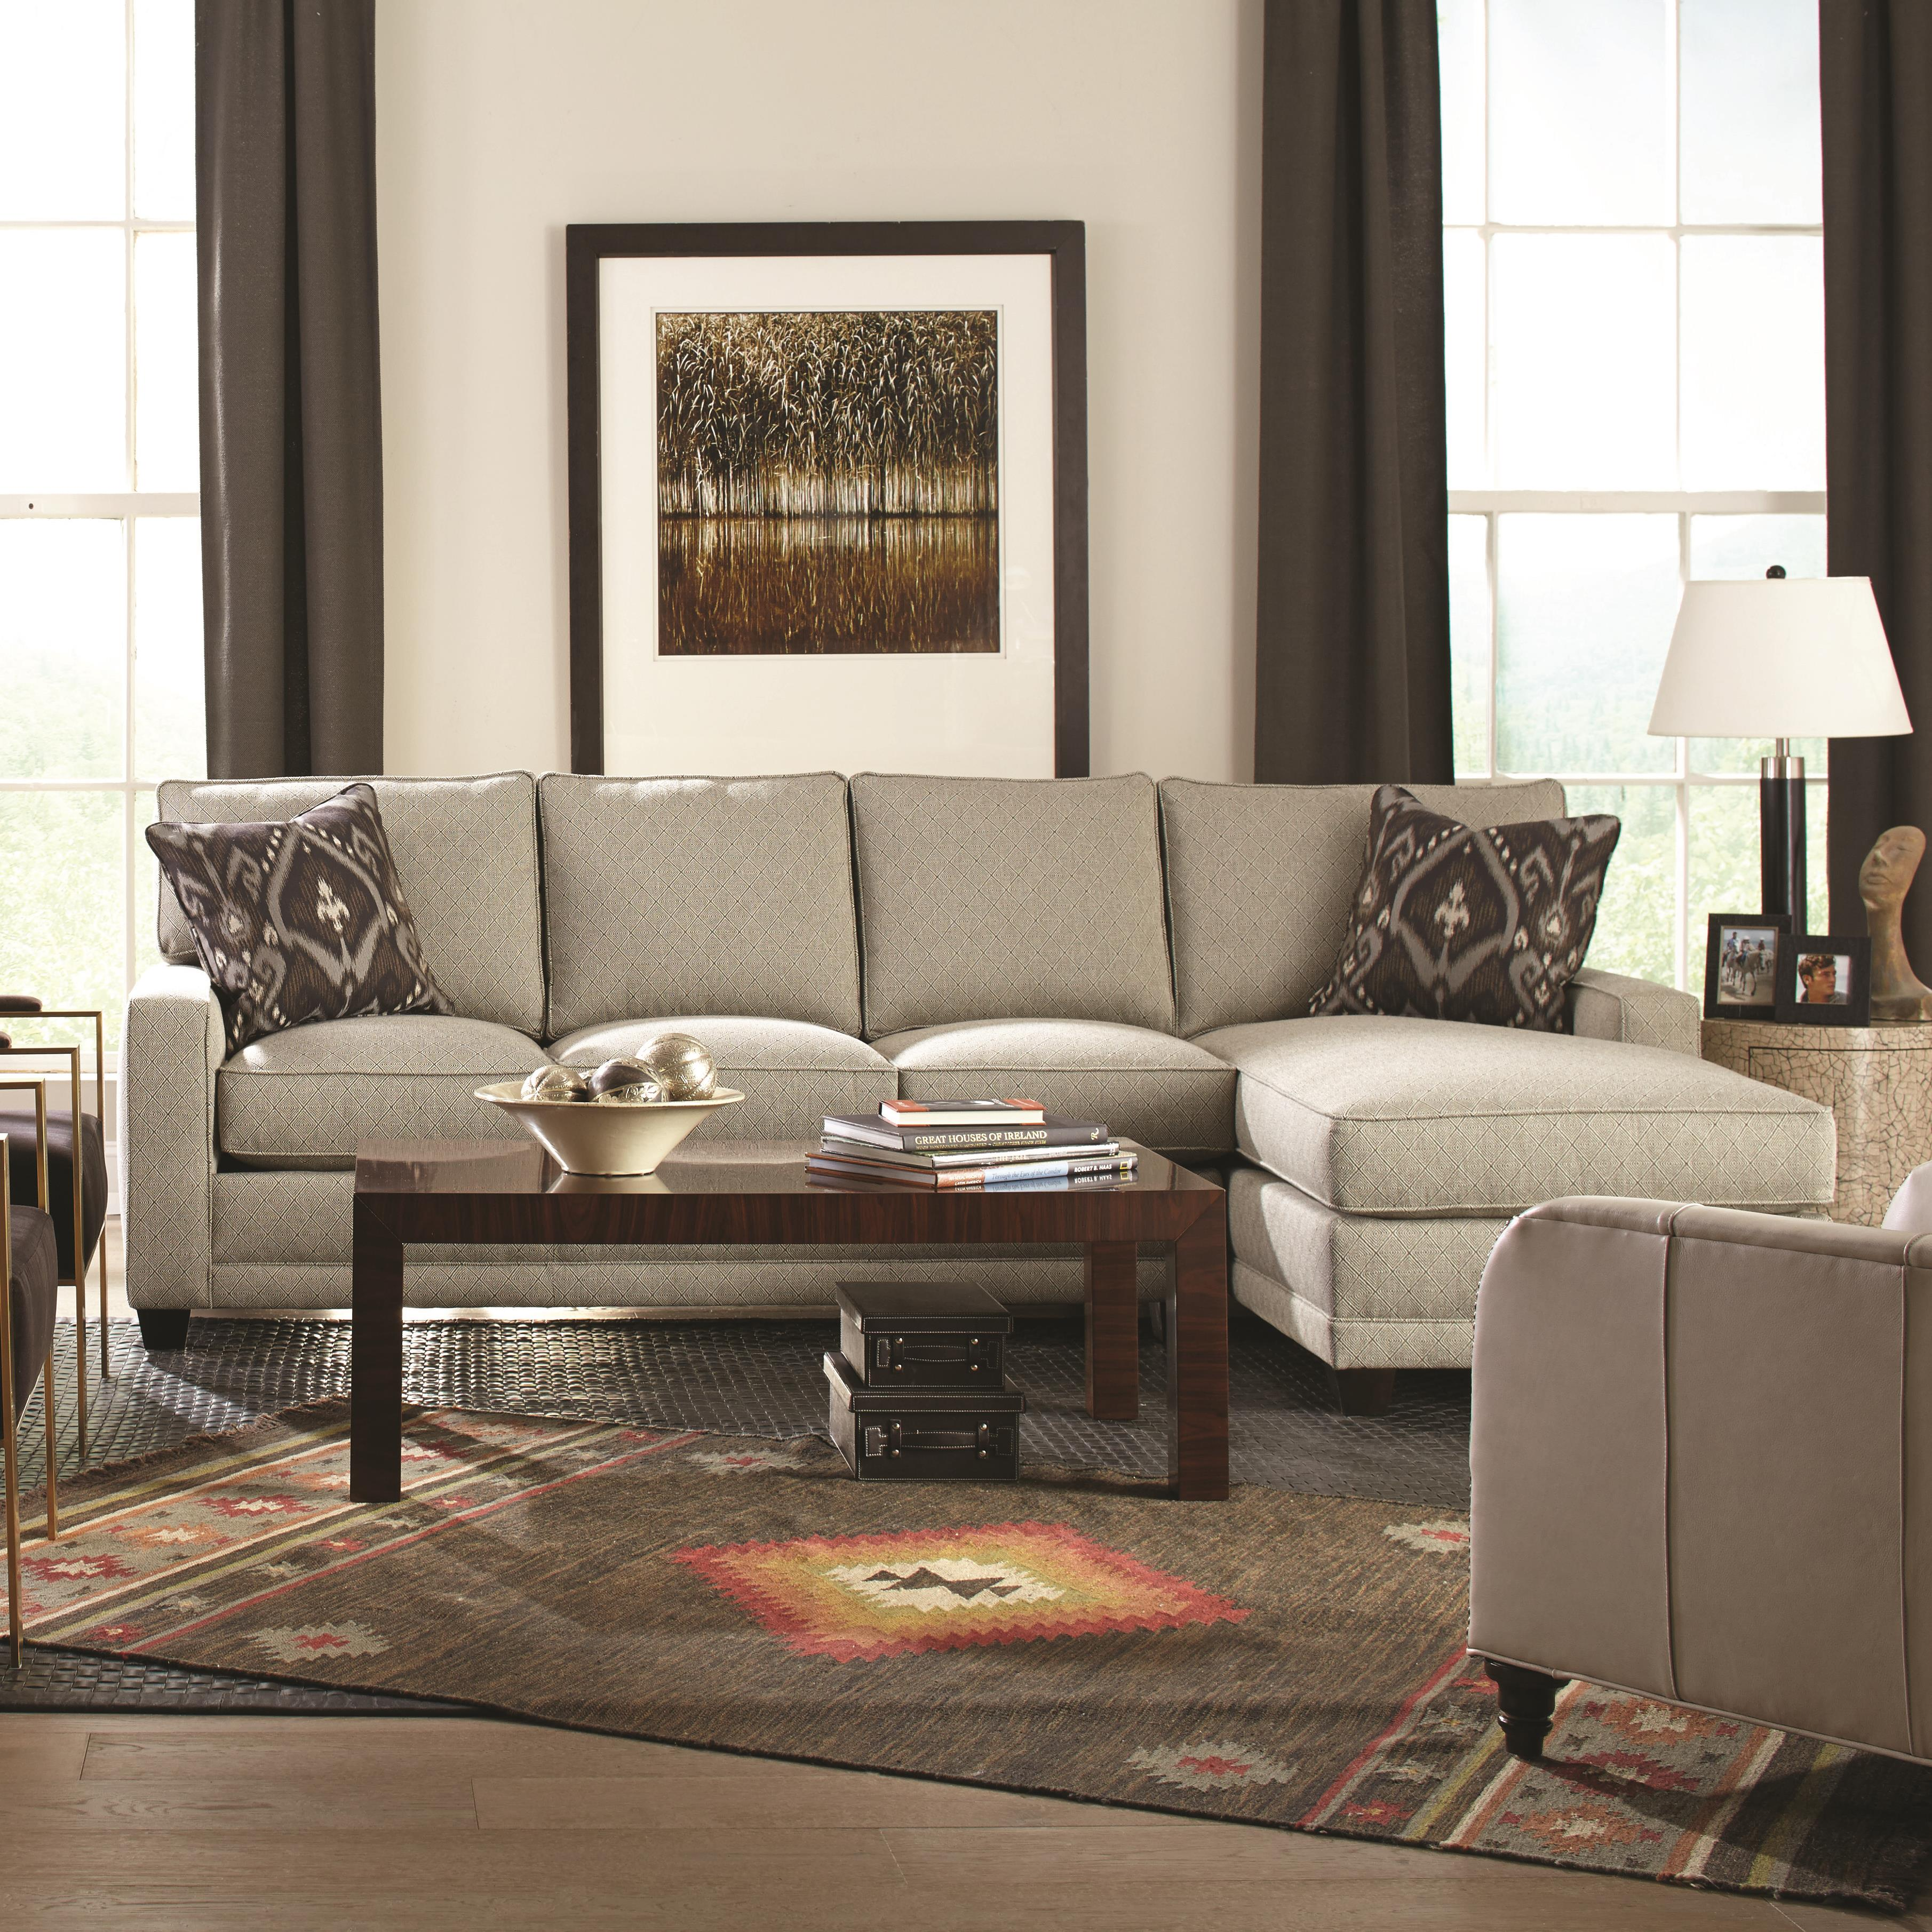 Rowe My Style Contemporary Sectional Sofa with Chaise - Item Number: BT200-B-116+111-44679-08